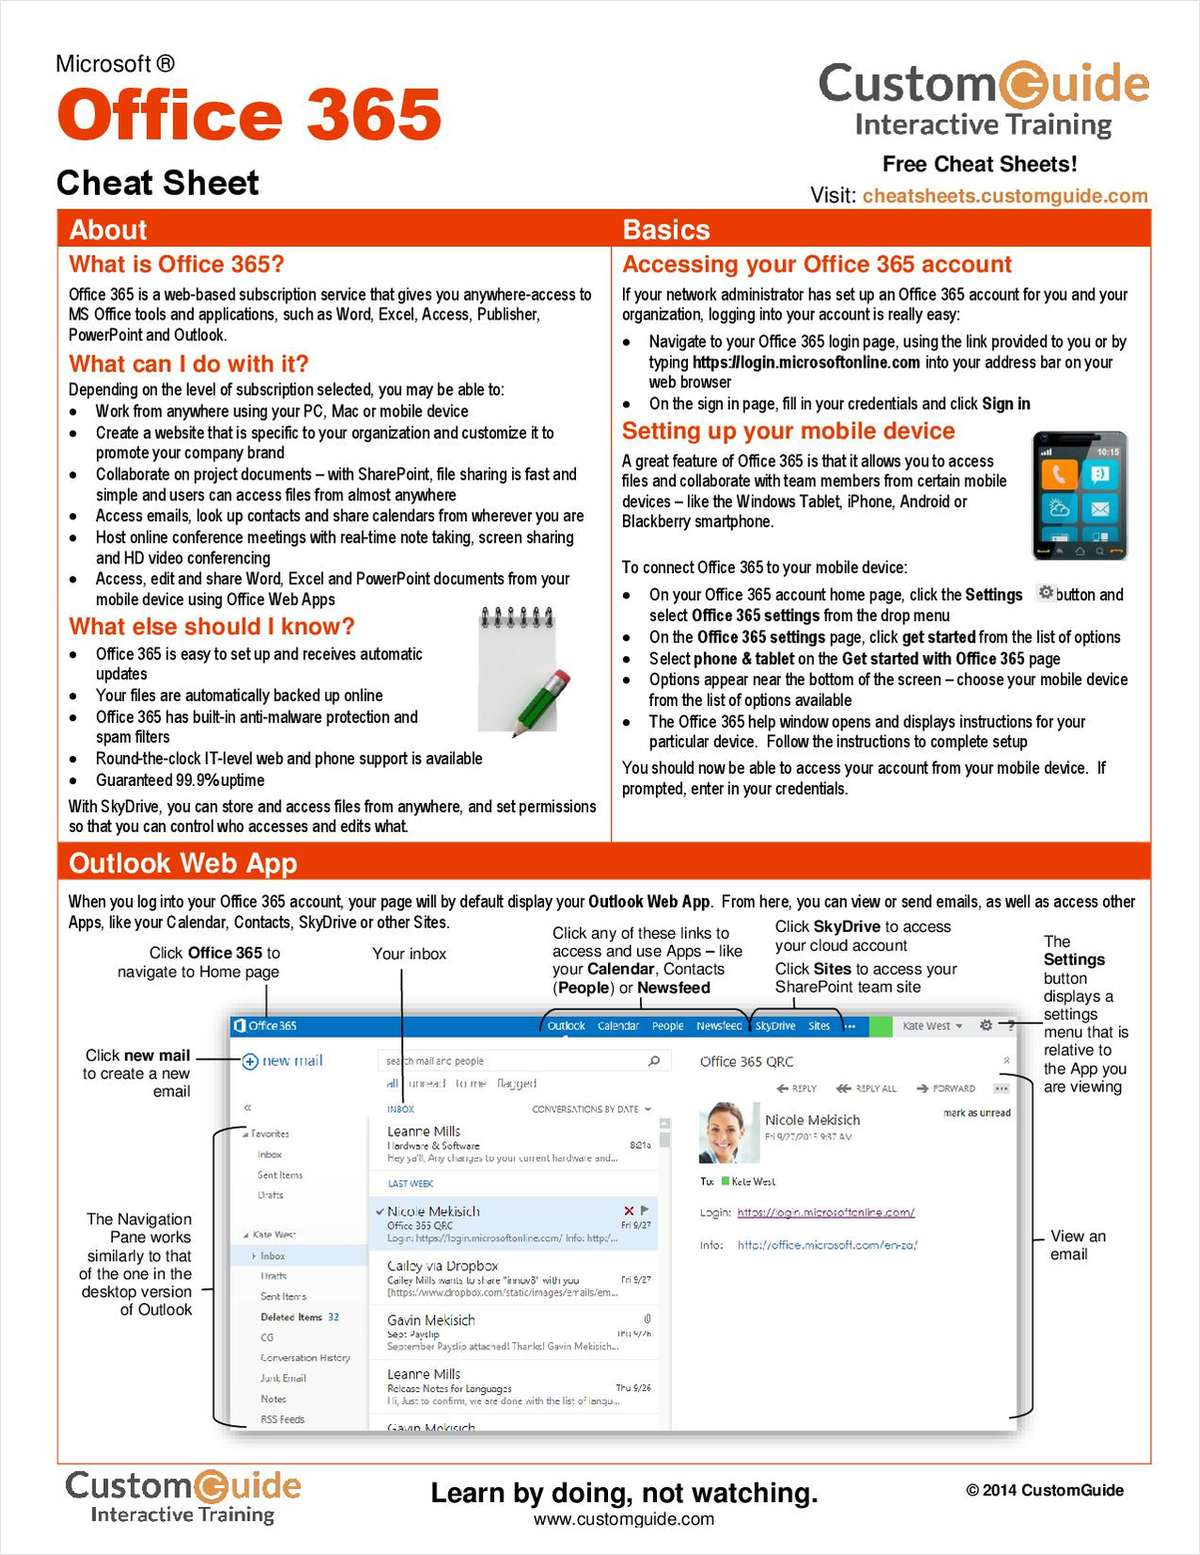 Microsoft Office 365 -- Free Cheat Sheet